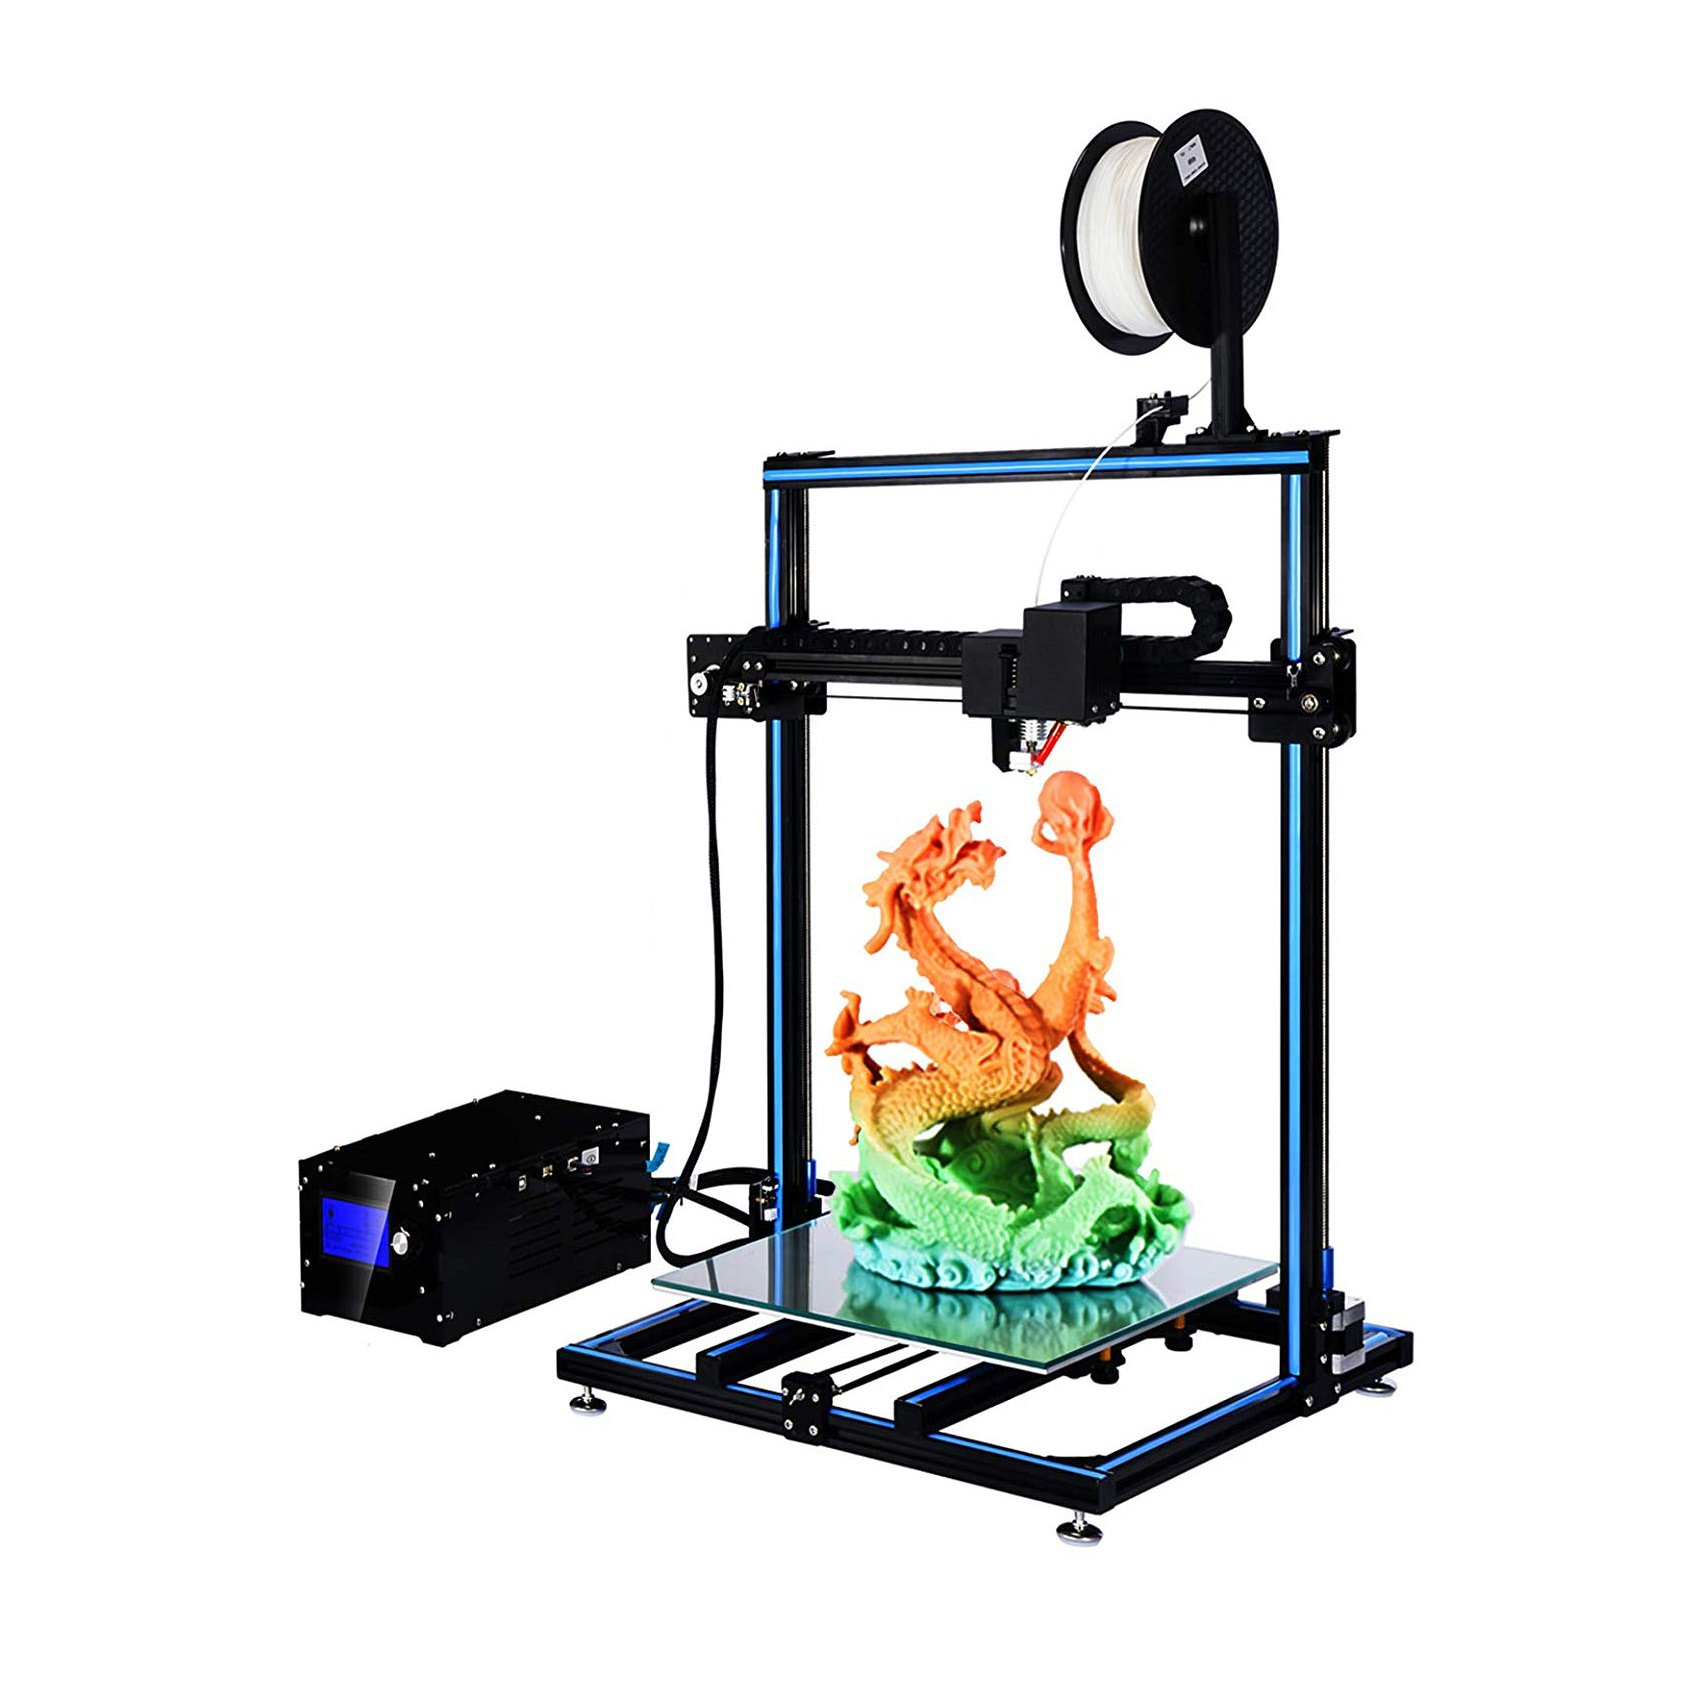 Best Rated 3D Printers you can buy on Amazon - August 2019 - 3D Printing